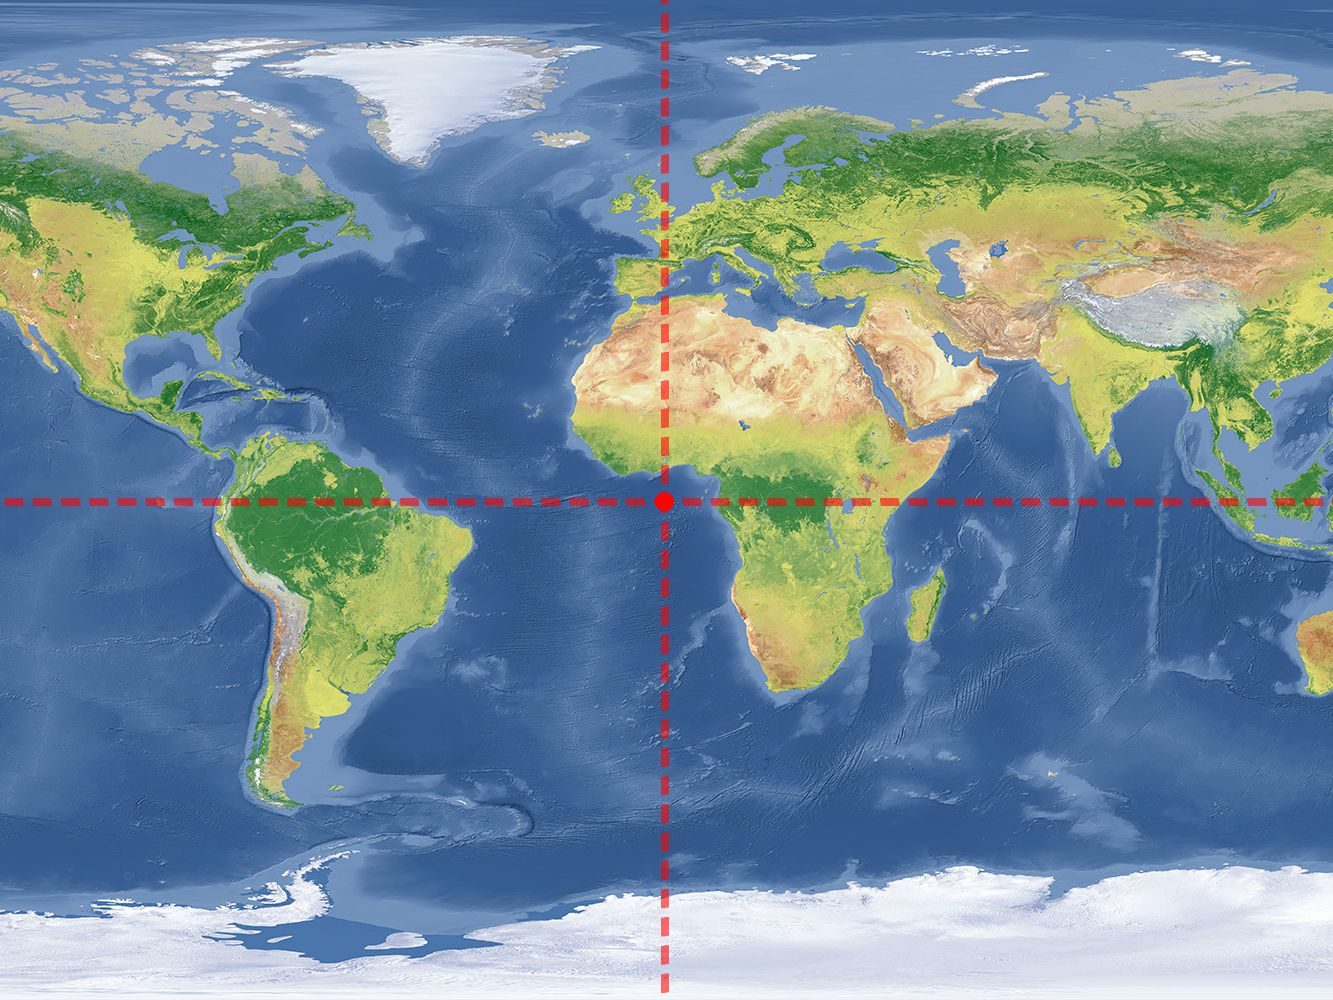 Where Do 0 Degrees Latitude And Longitude Intersect